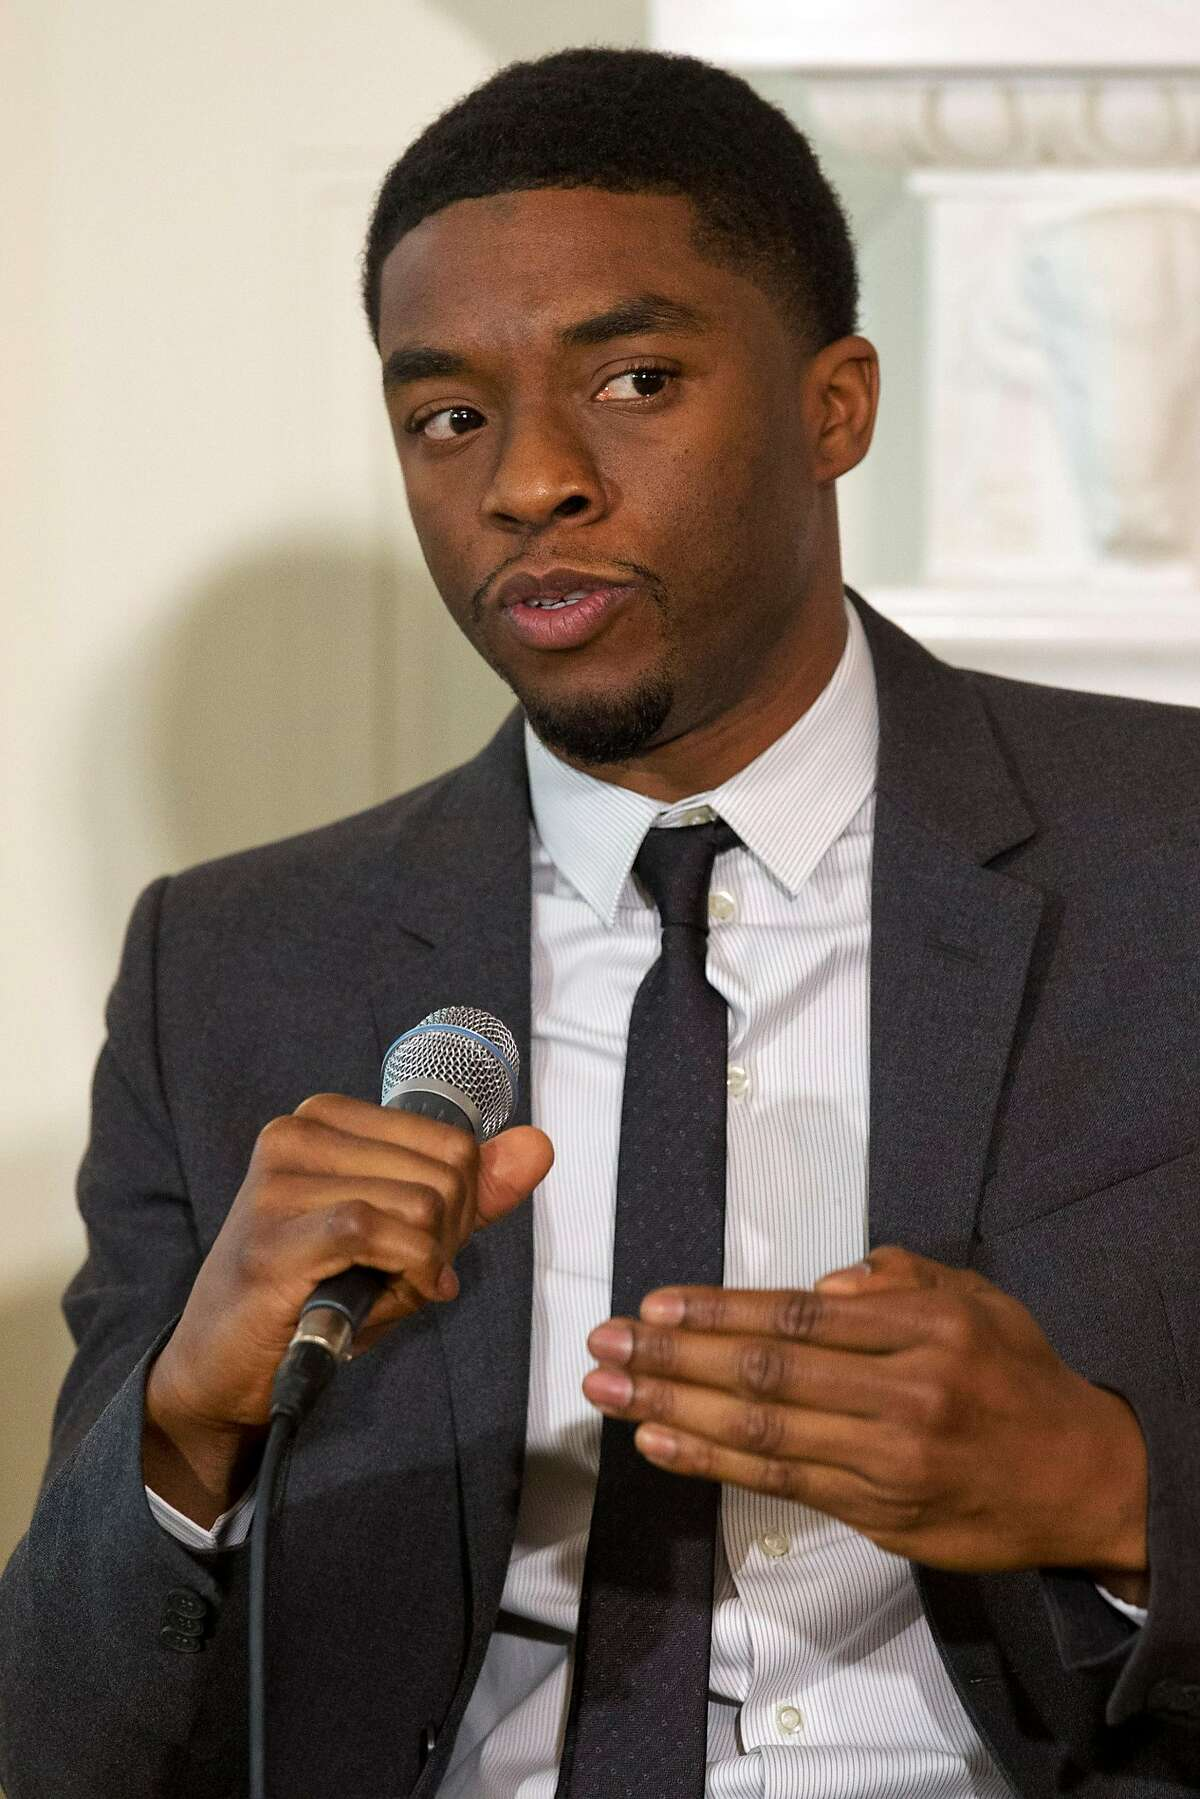 Actor Chadwick Boseman, who plays baseball great Jackie Robinson in the movie